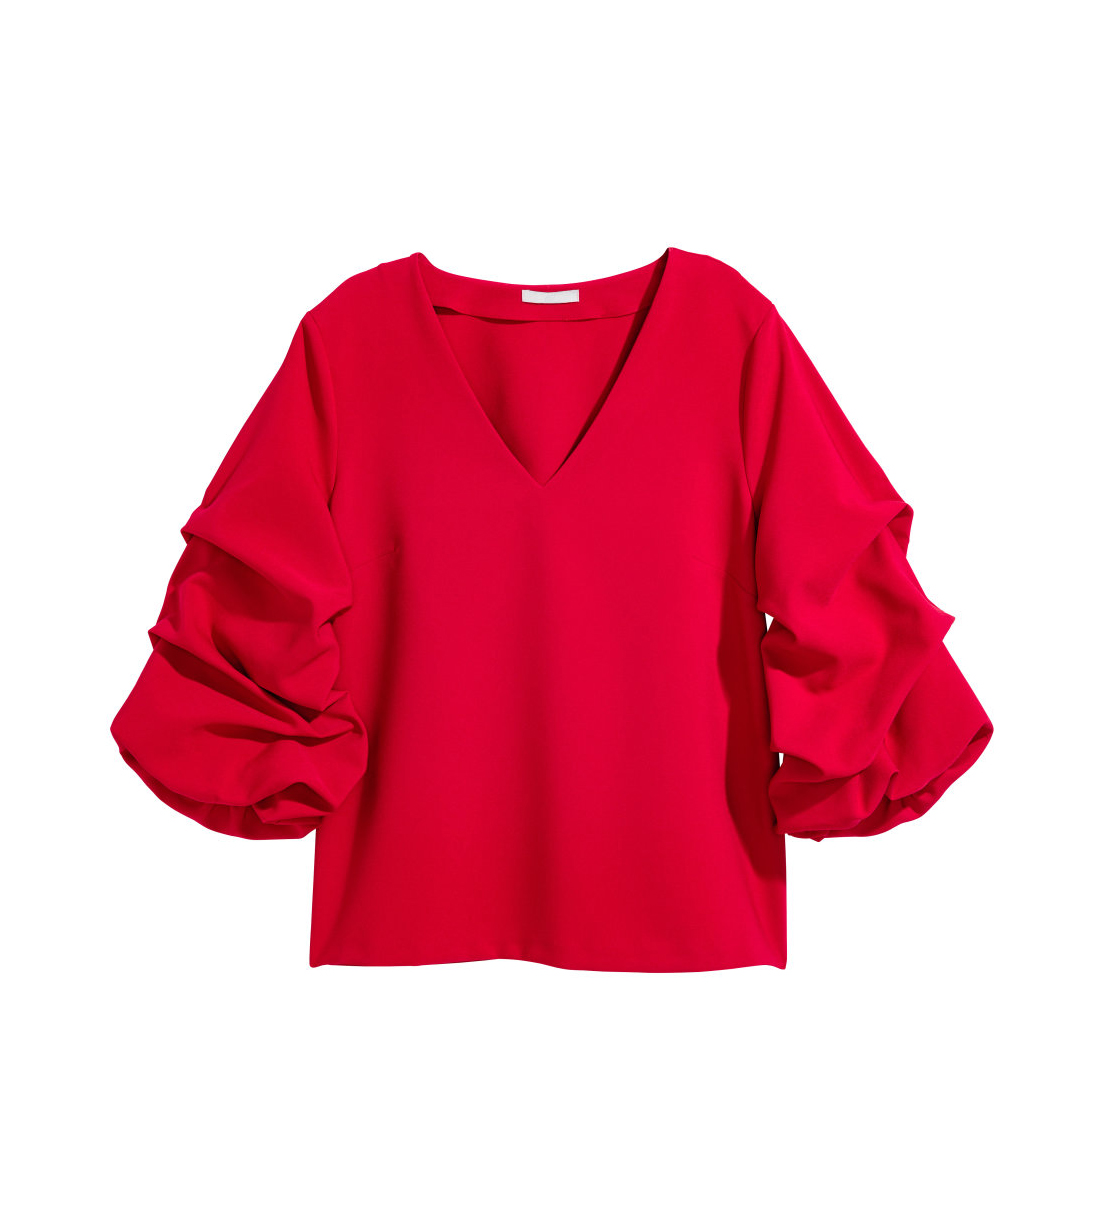 H&M Top With Draped Sleeves in red